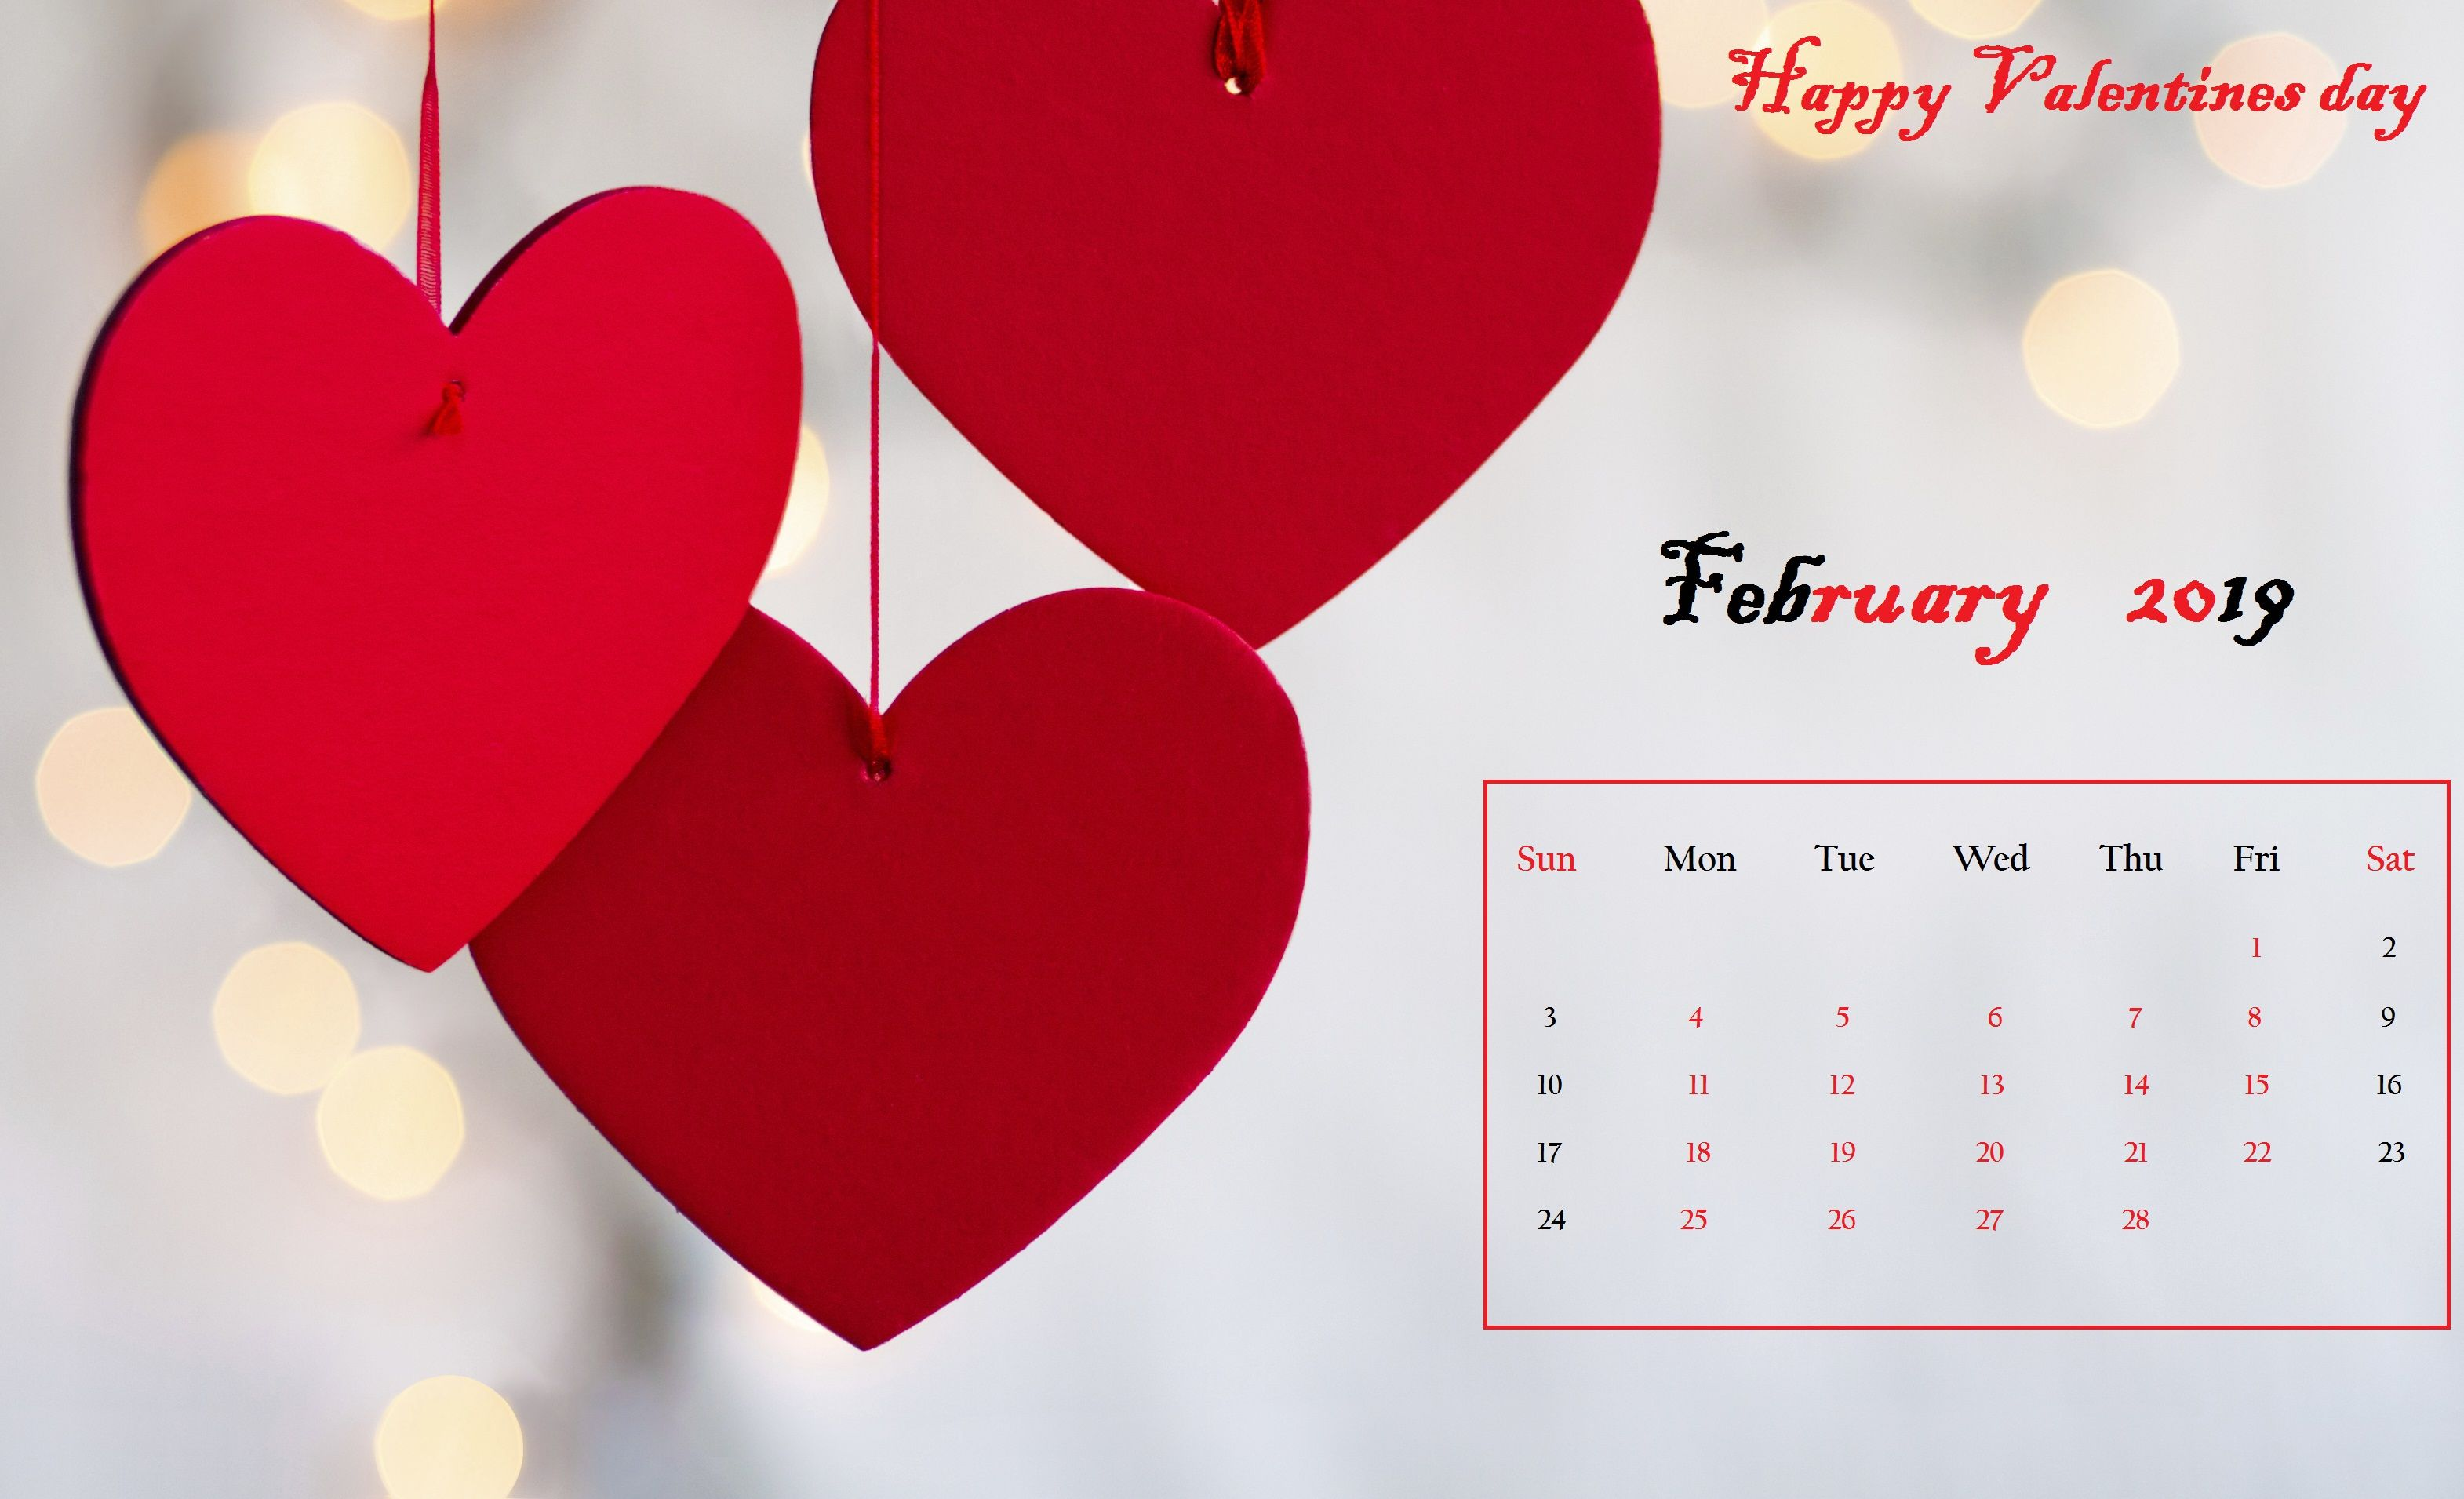 February 2019 Calendar With Hearts Red heart Desktop Calendar February 2019 | Calendar Designs in